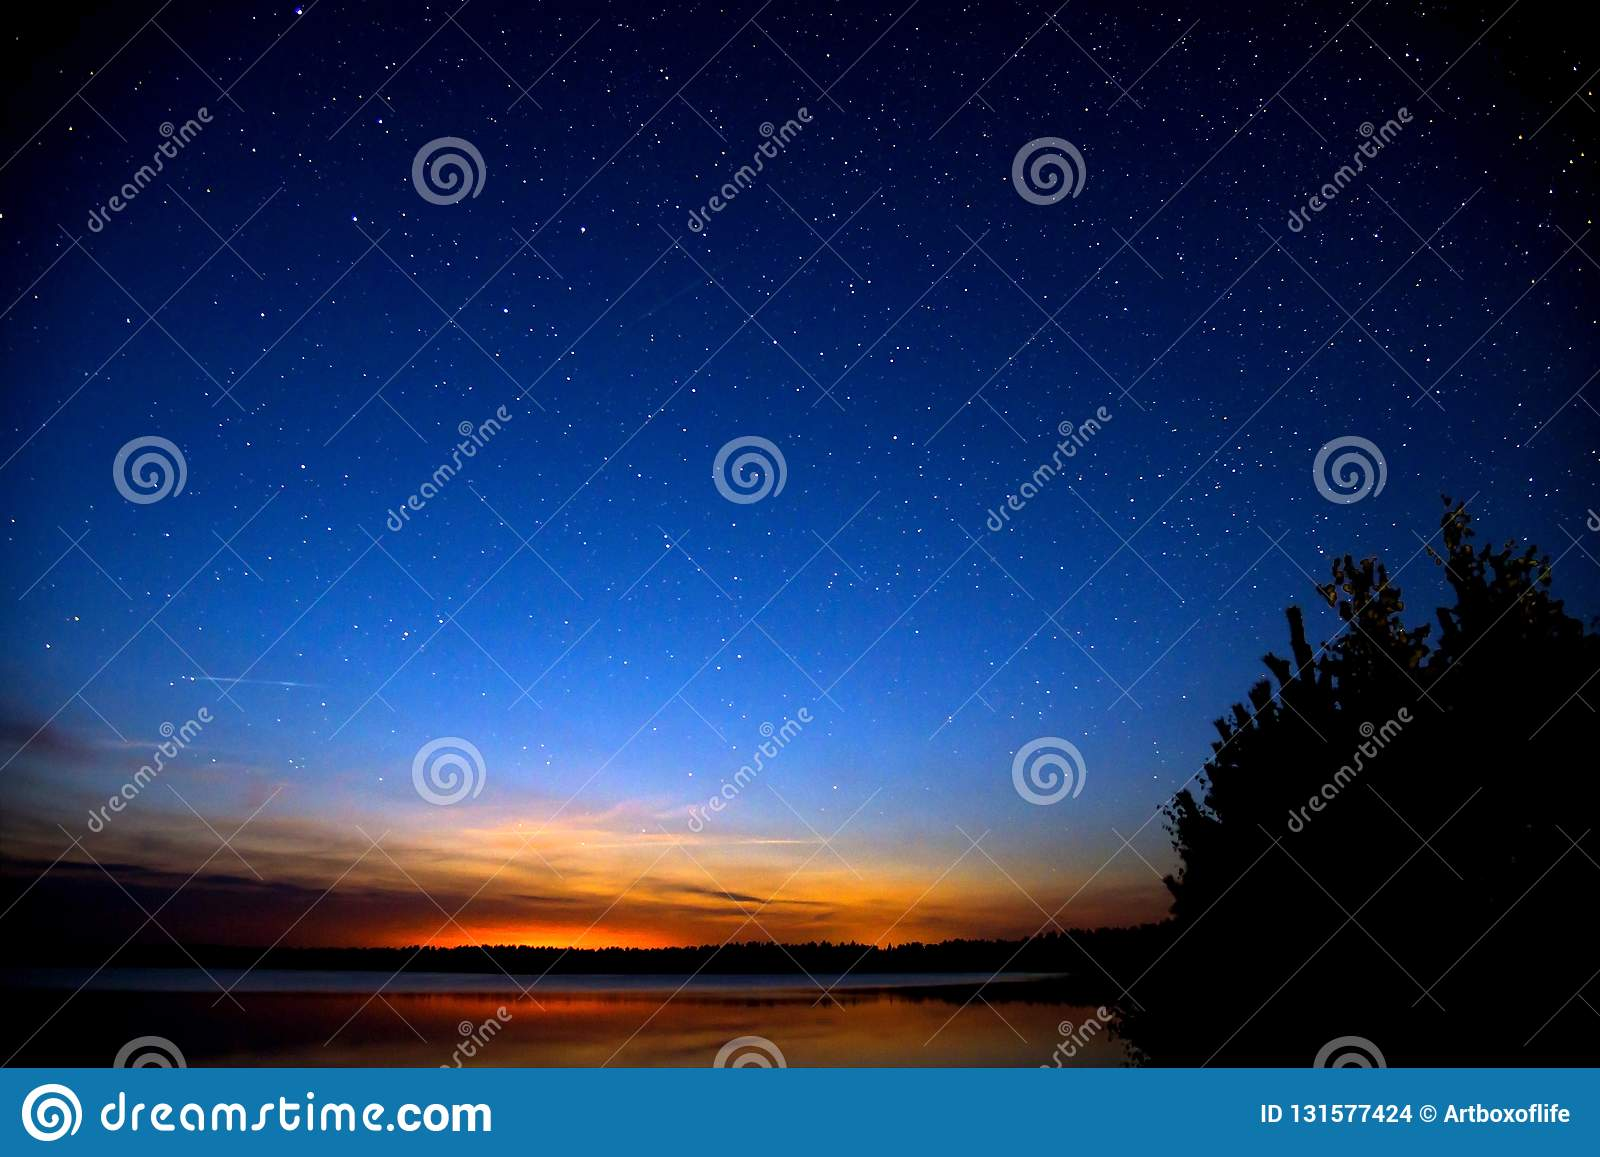 Amazing colorful sky after sunset by the river. Sunset and night sky with a lot of stars